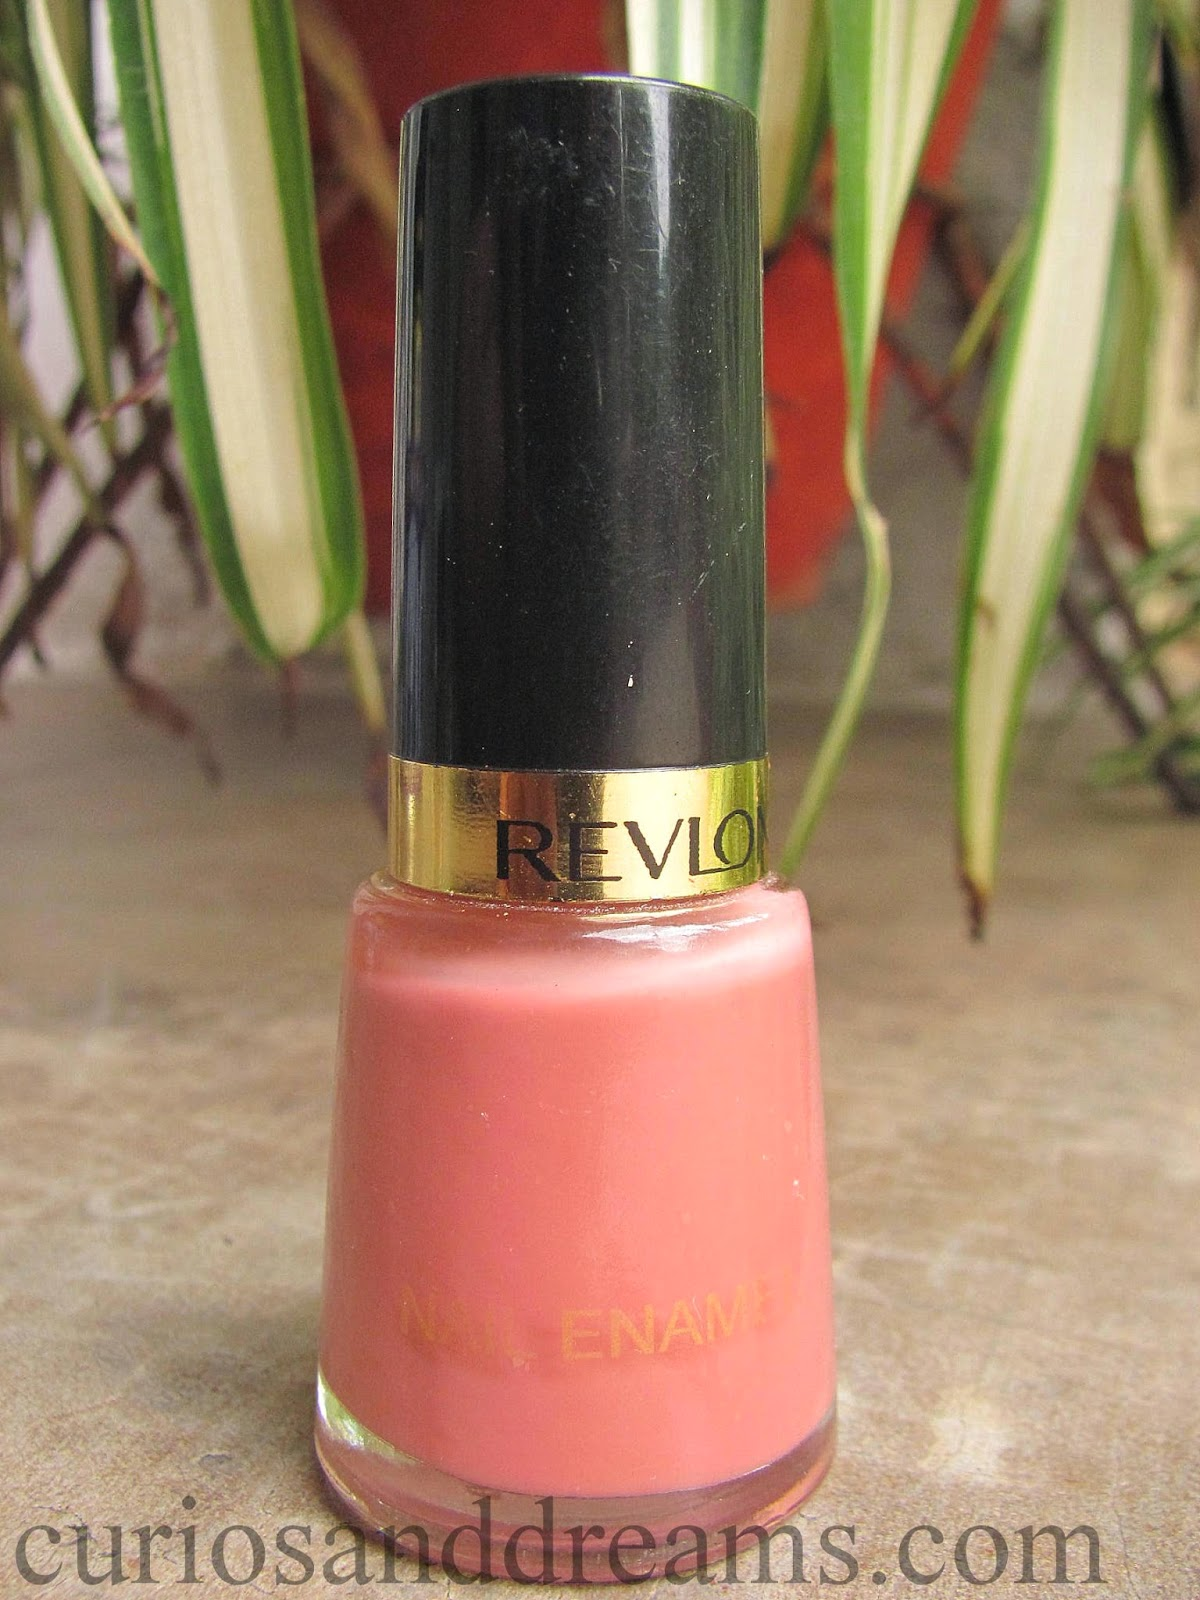 Curios and Dreams | Makeup and Beauty Product Reviews : Revlon Nail ...